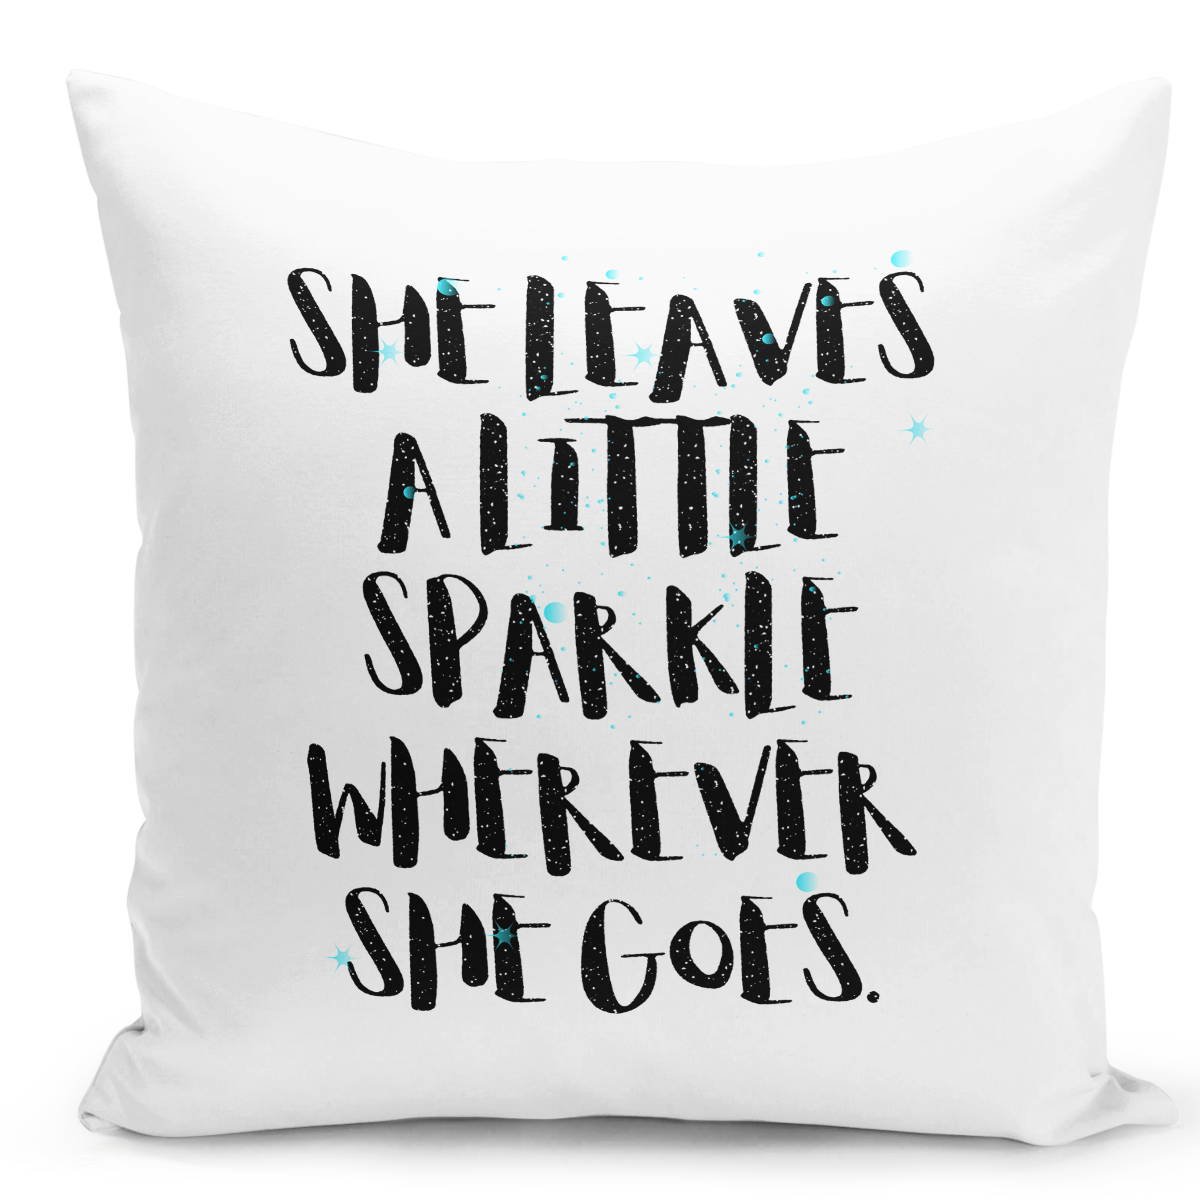 16x16-inch-Throw-Pillow-for-Home-Decor-with-Stuffing-Girly-Pillow-She-Leaves-Sparkles-Where-She-Goes-